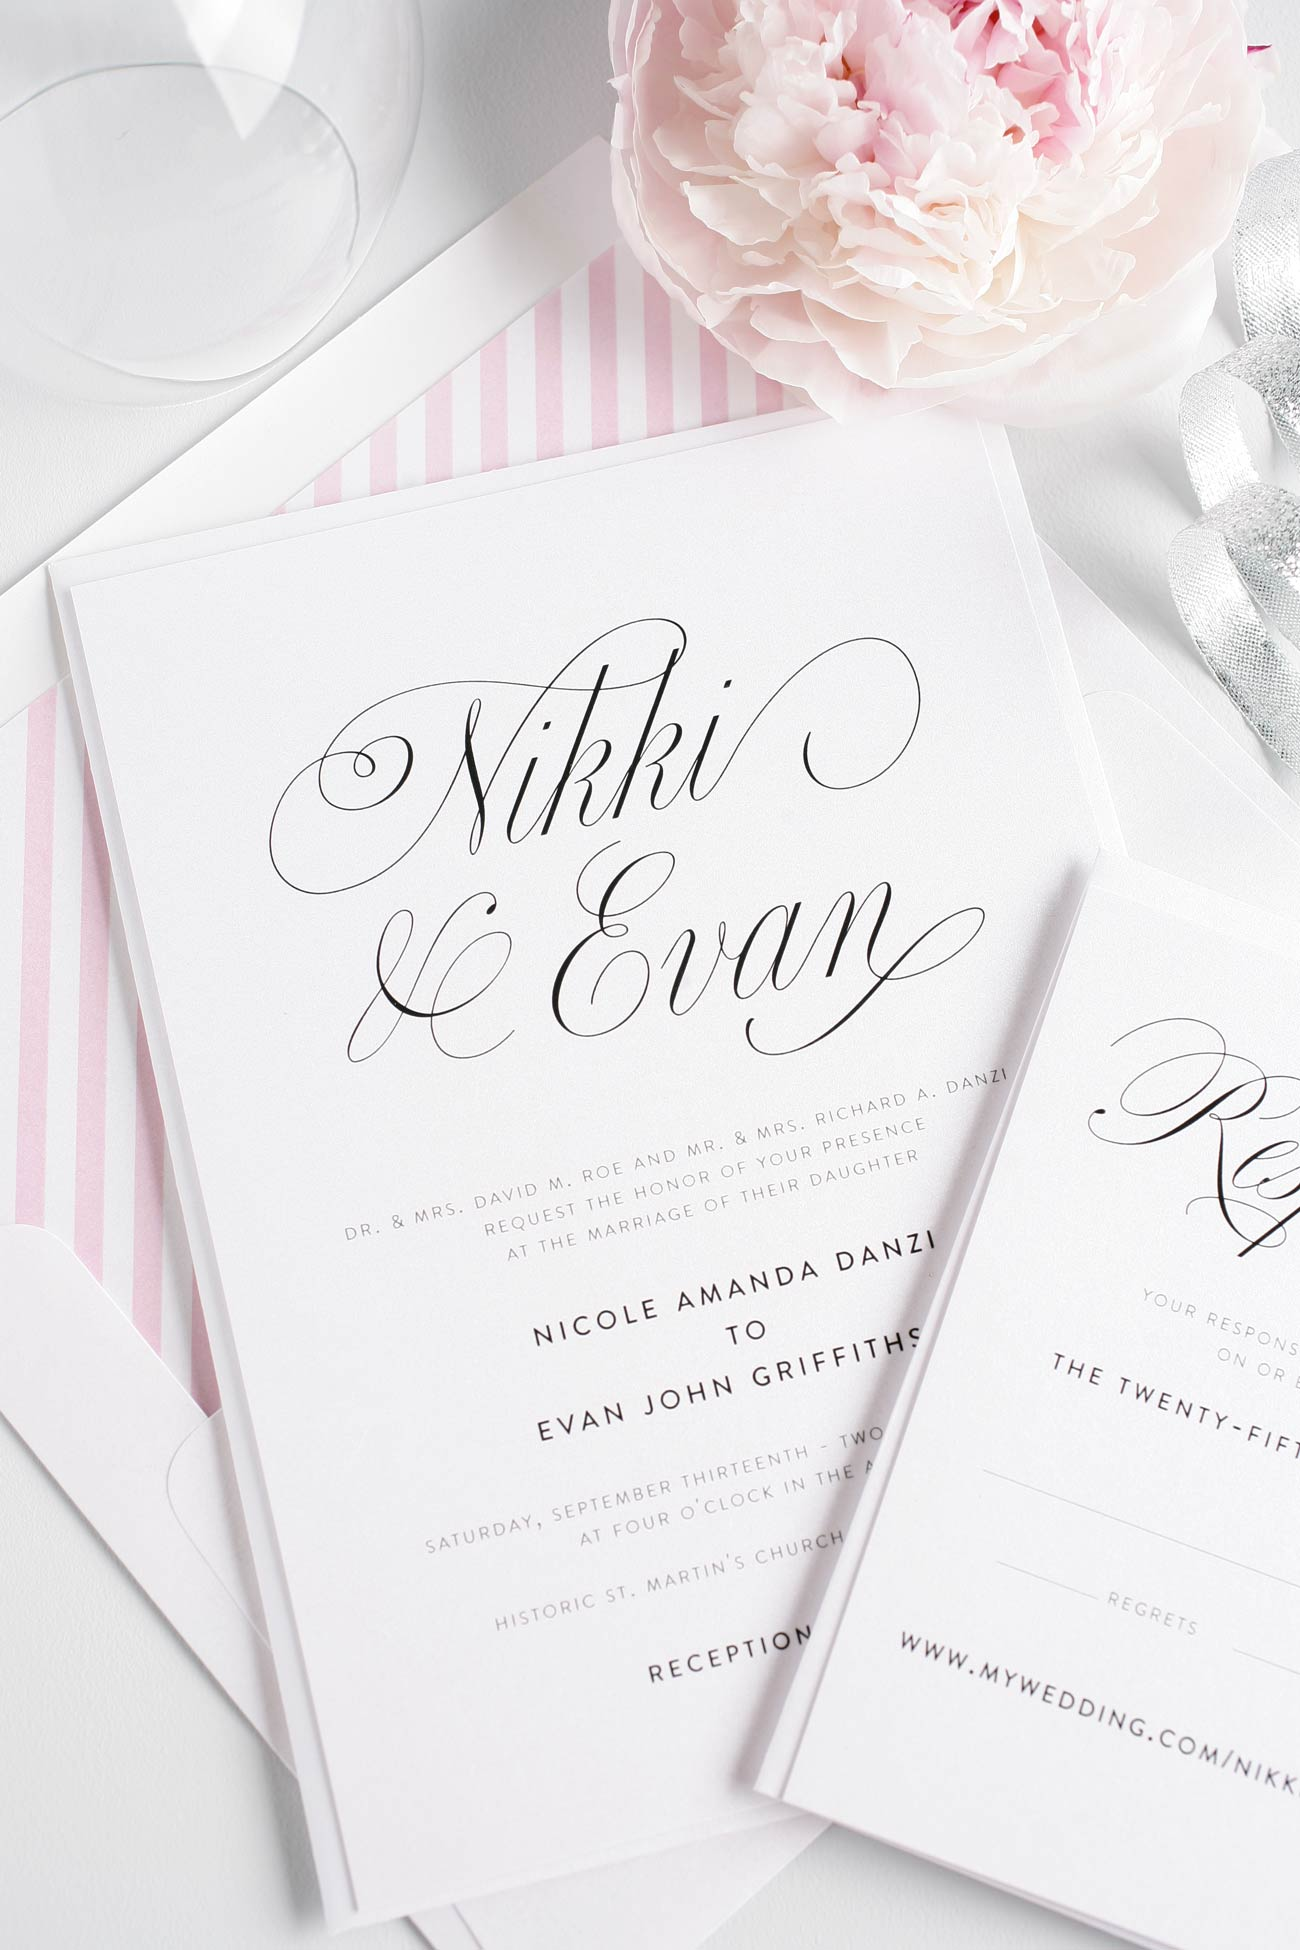 Script wedding invitations in blossom pink